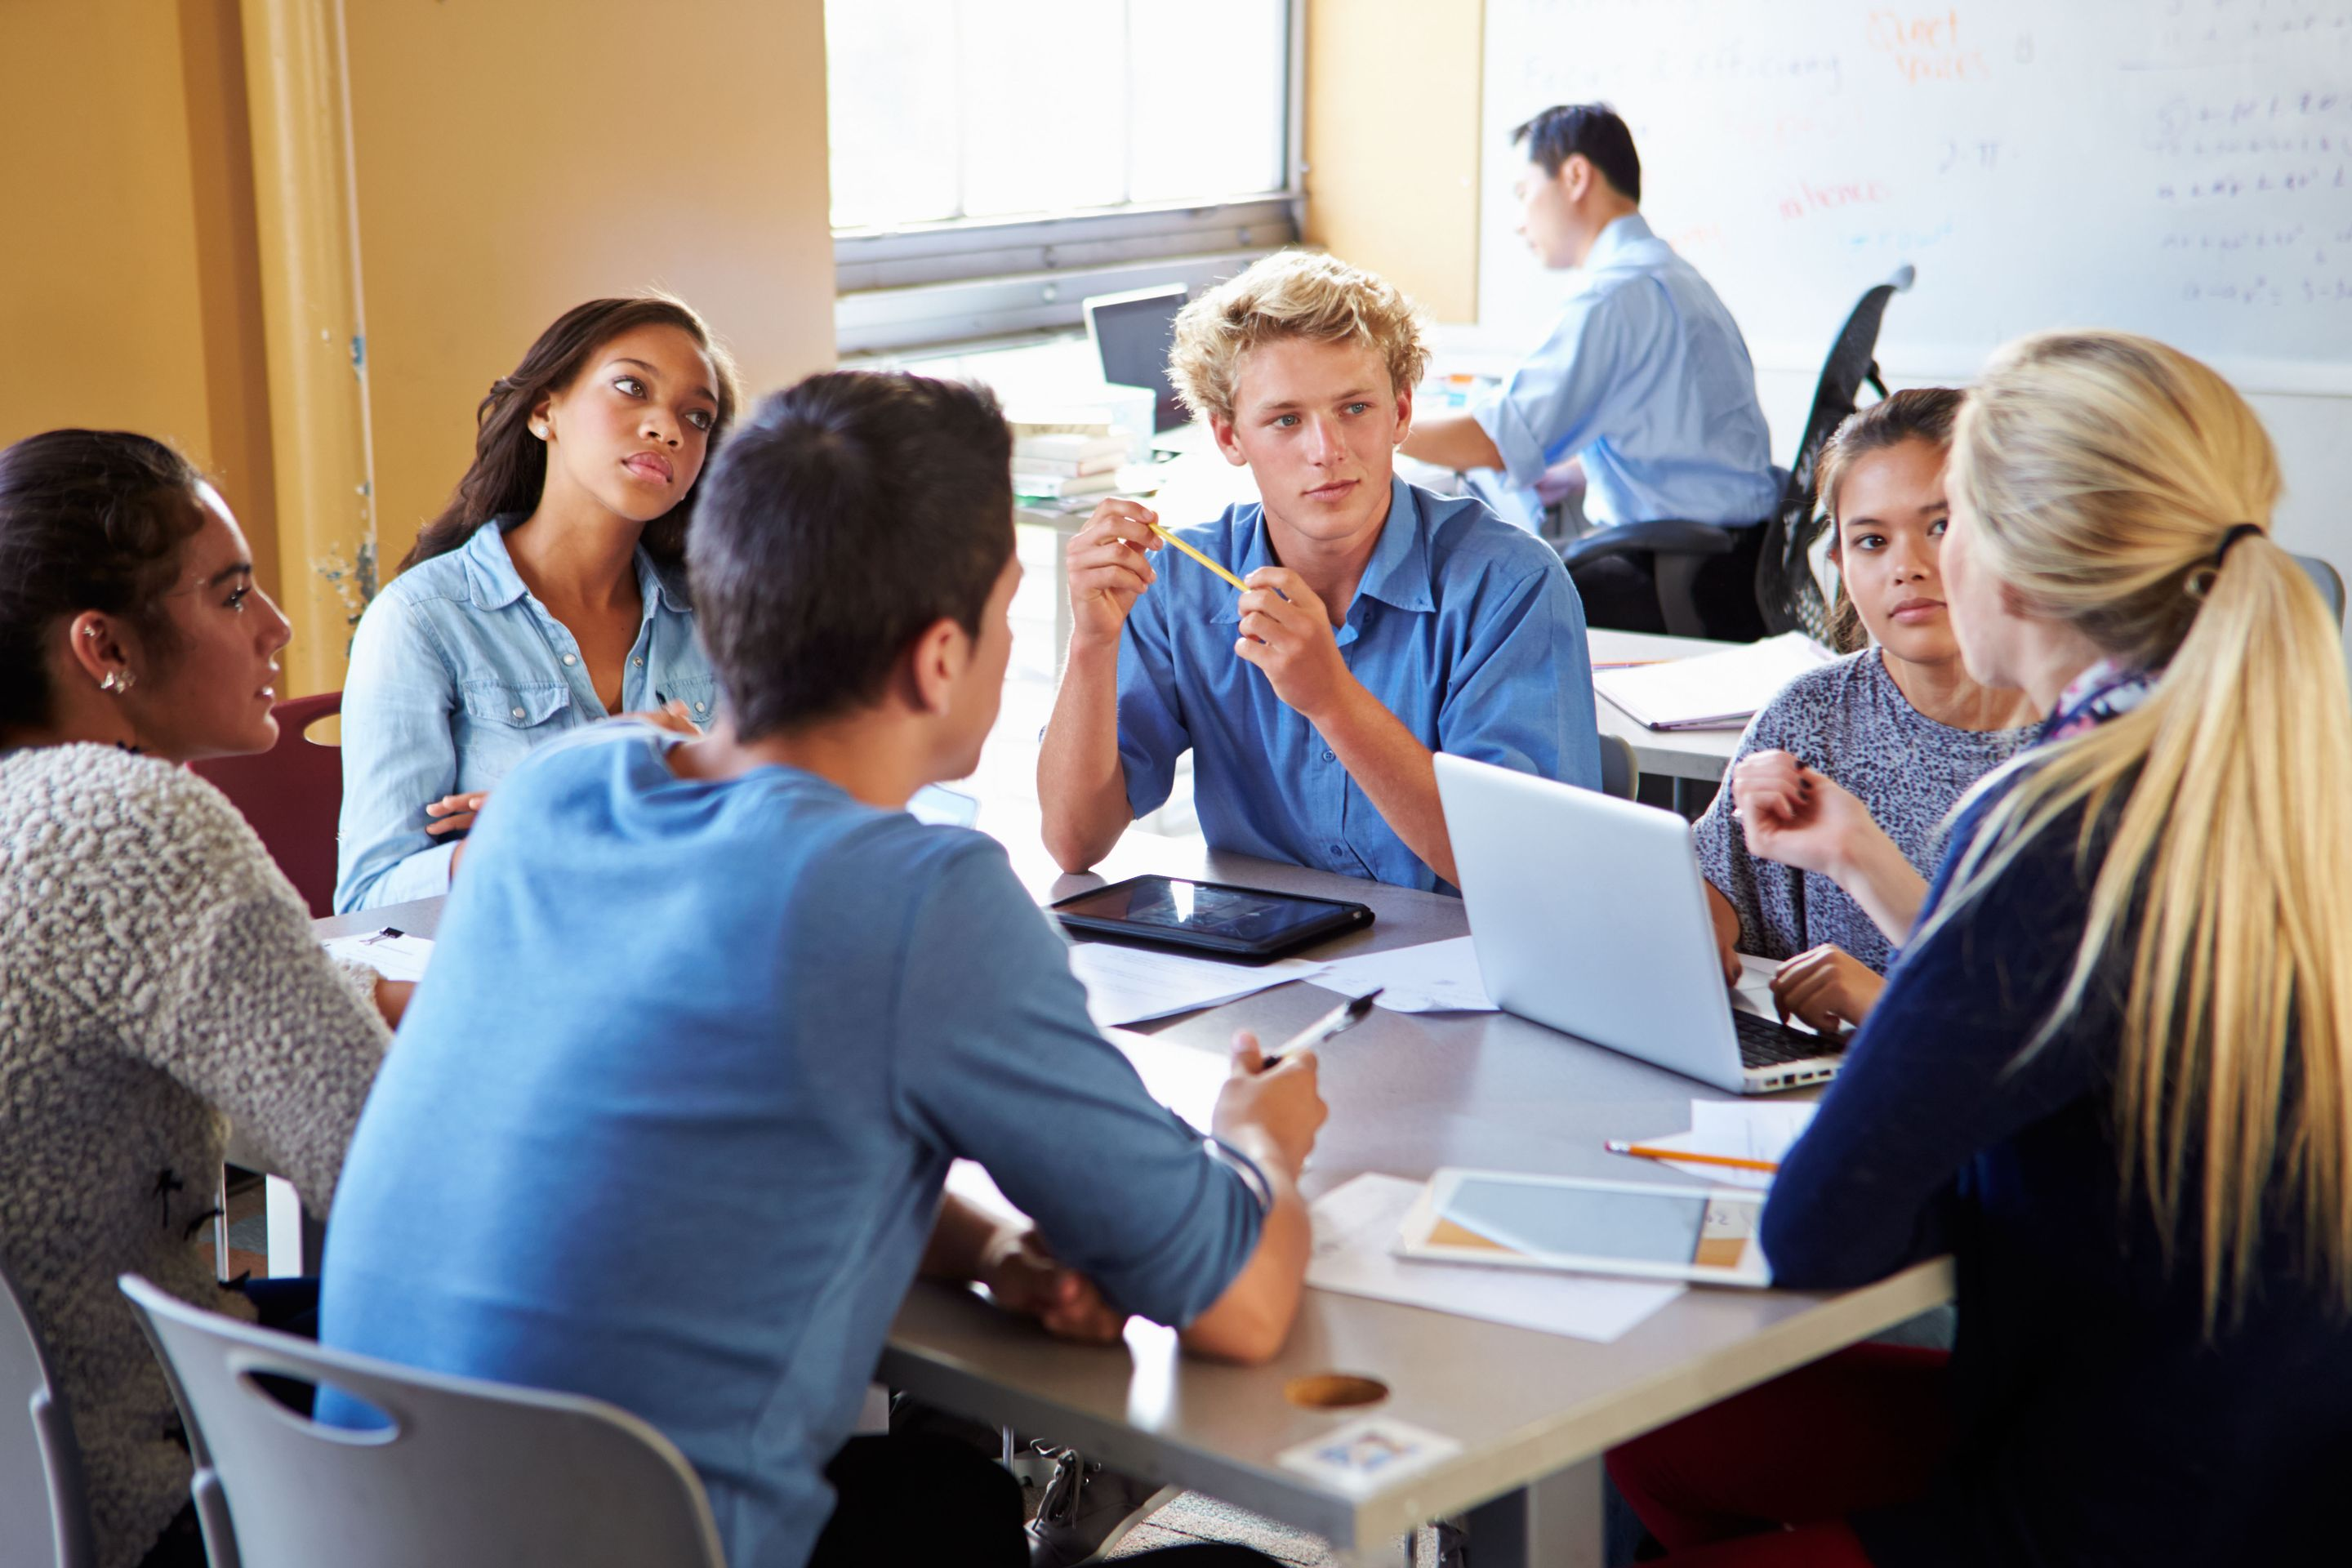 High school students discussing advertisements in a group in the classroom